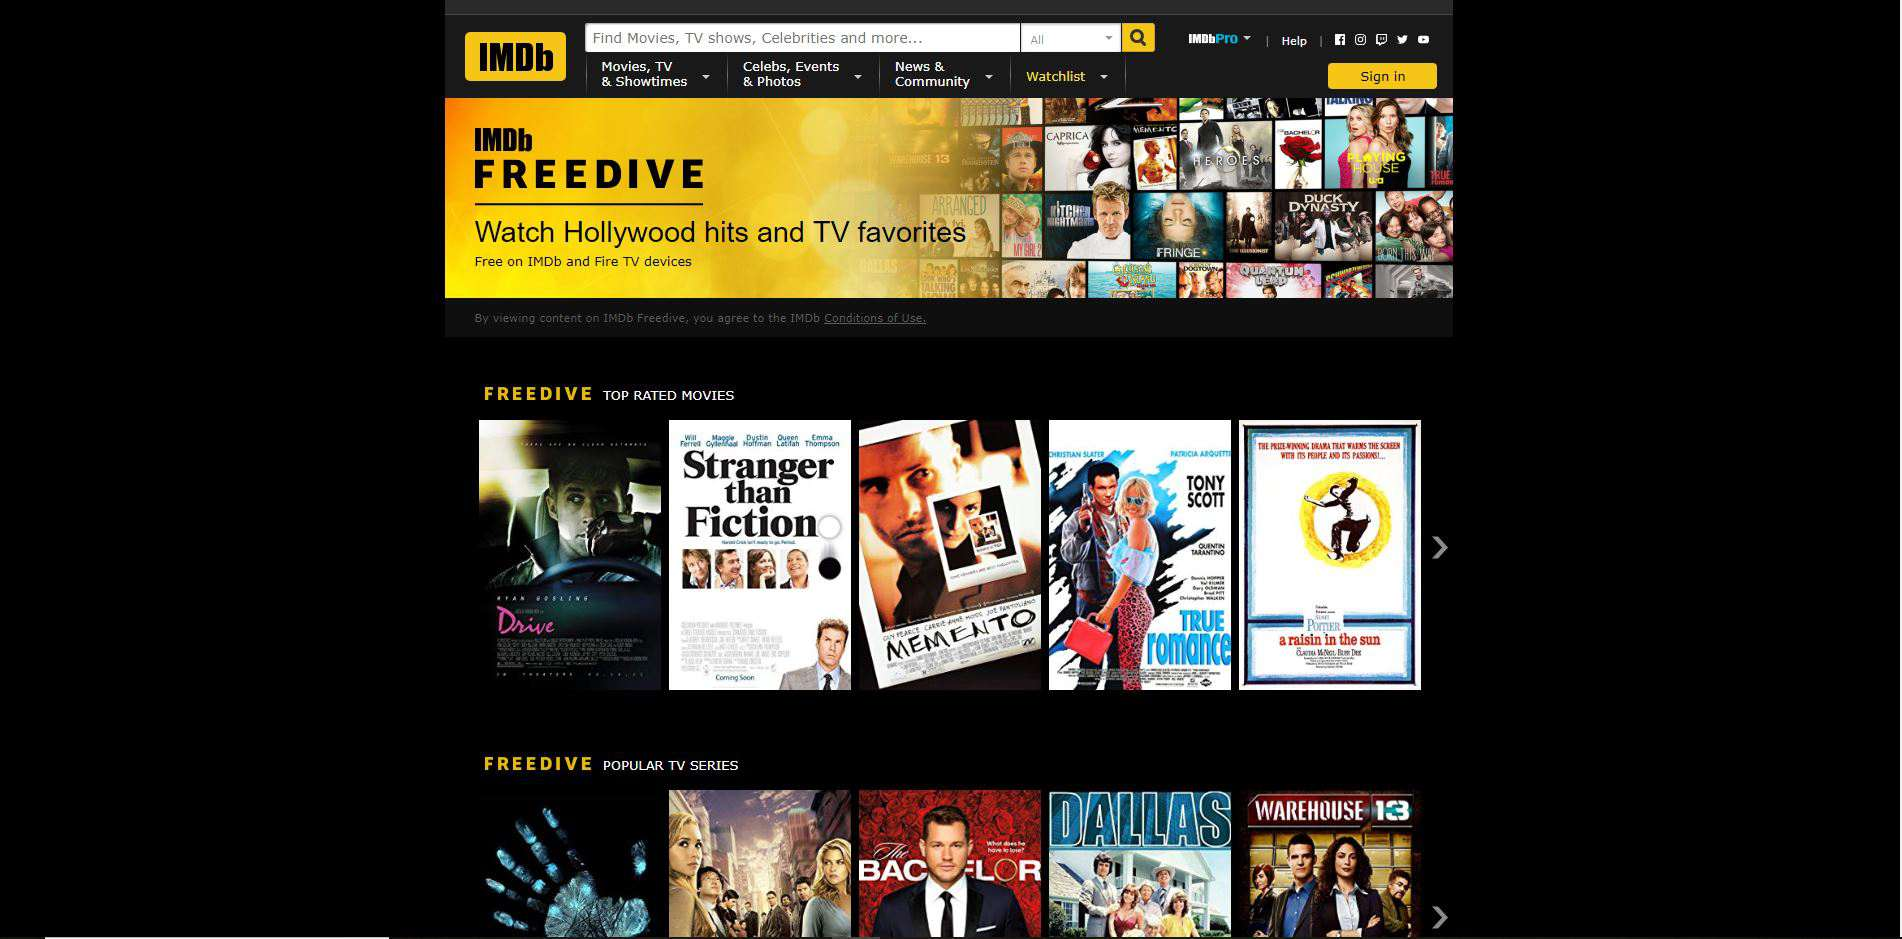 Amazon Freedive: What It Is and How to Watch